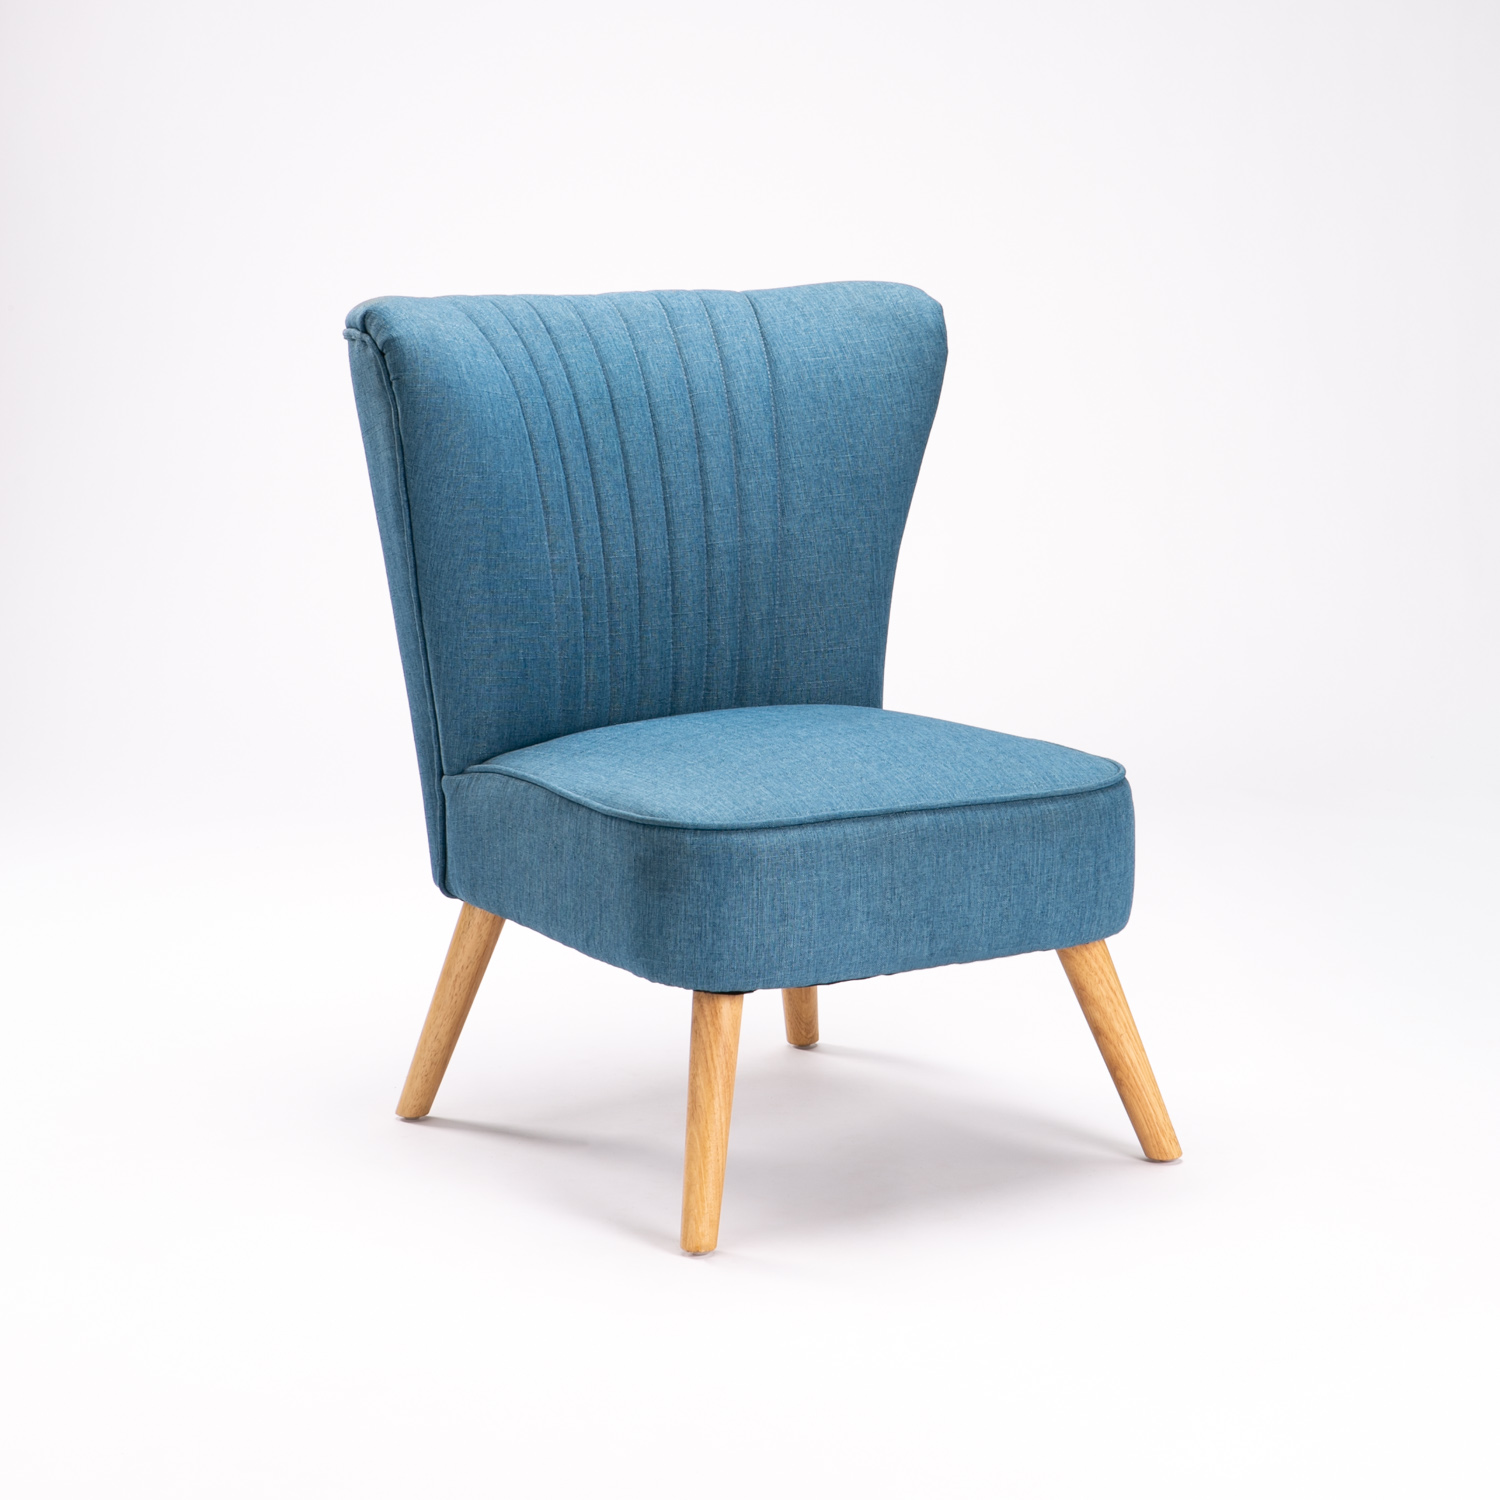 Shell Fabric Chair - Teal